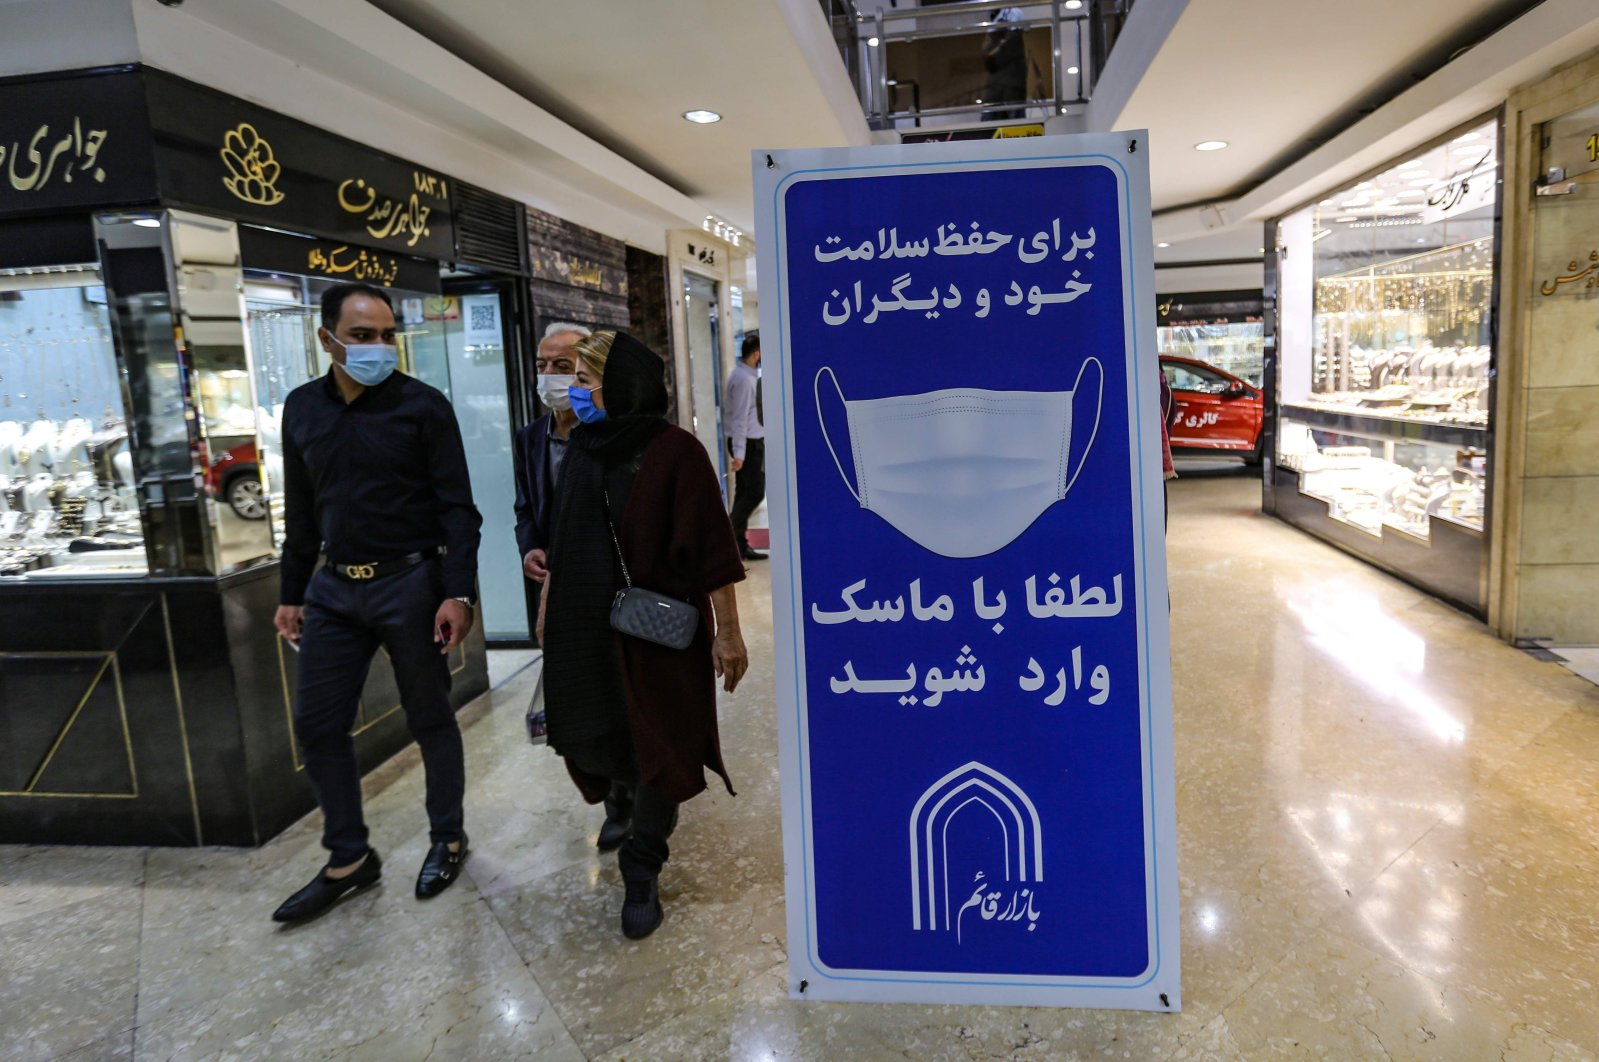 Iranians walk next to a sign advising people to wear masks on their way to shop in Tajrish square in the capital Tehran on Nov. 1, 2020, amid the COVID-19 pandemic crisis. (AFP Photo)